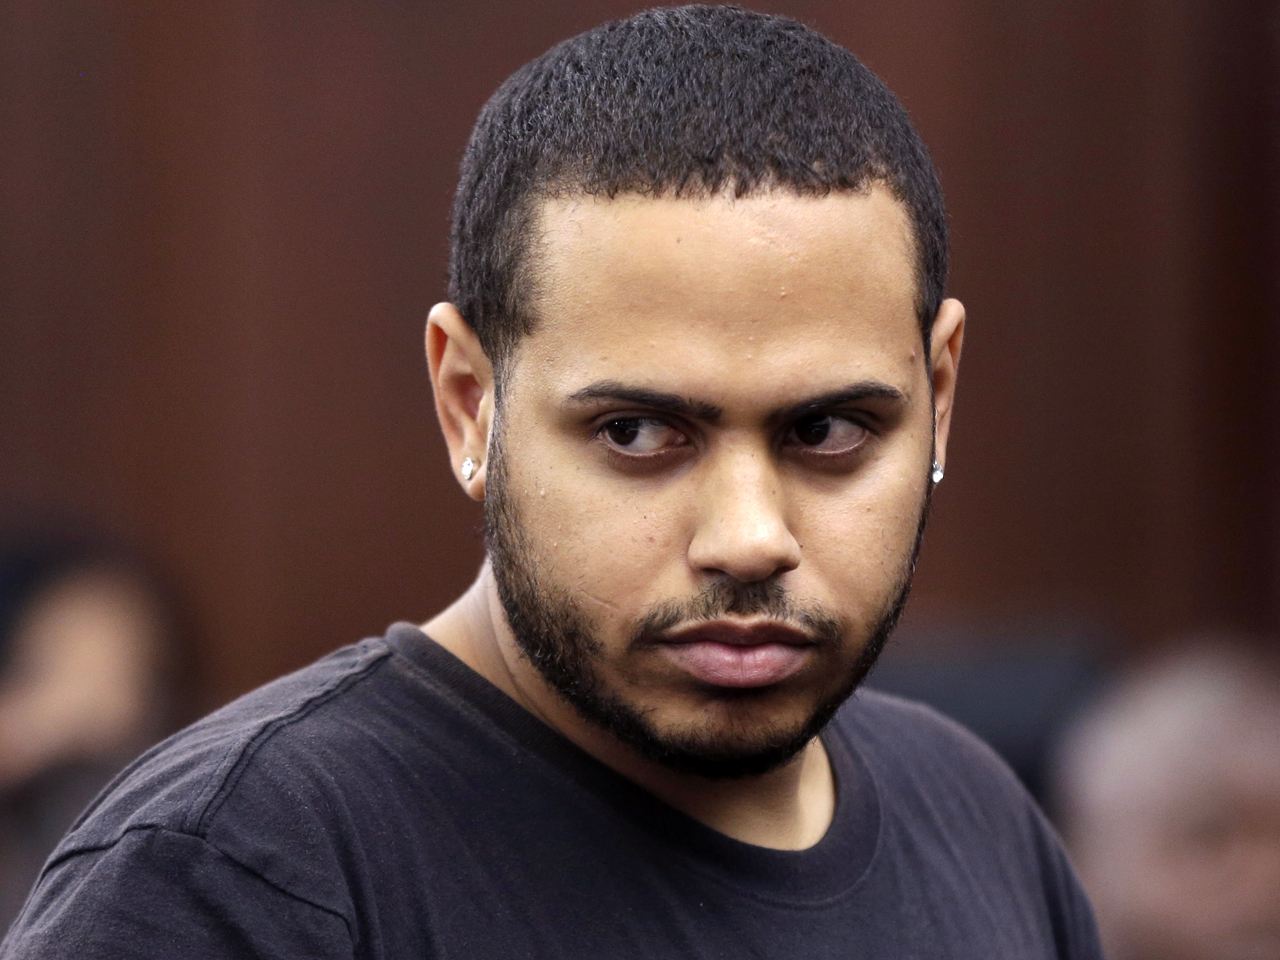 174th district court case 1430835 - Christopher Cruz Biker Charged In New York Road Rage Incident Faces Judge Cbs News